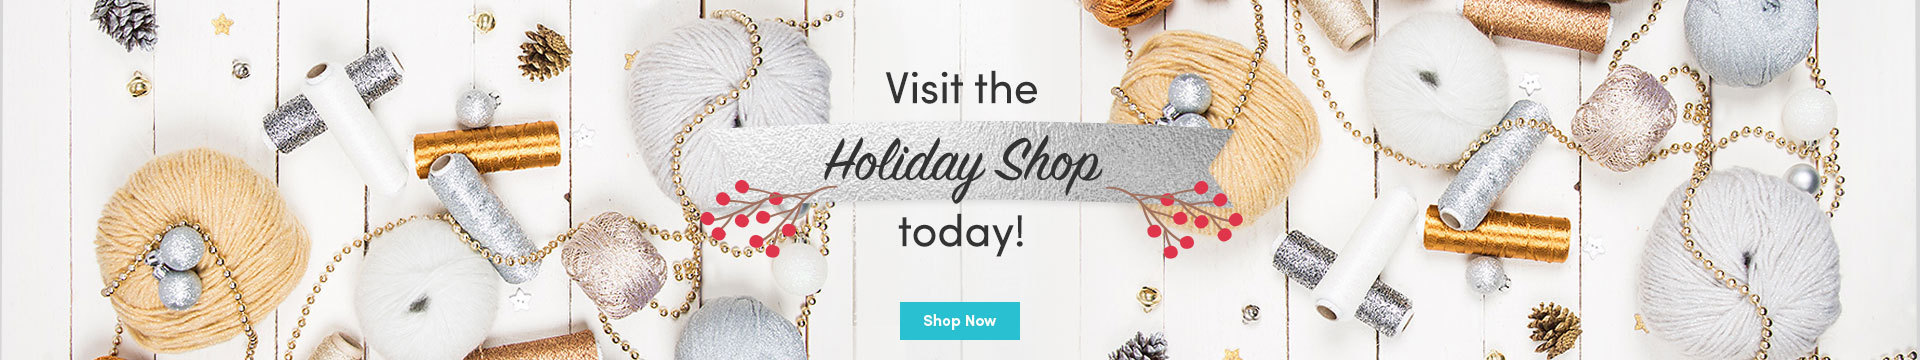 LK Marketing - NA Holiday Shop